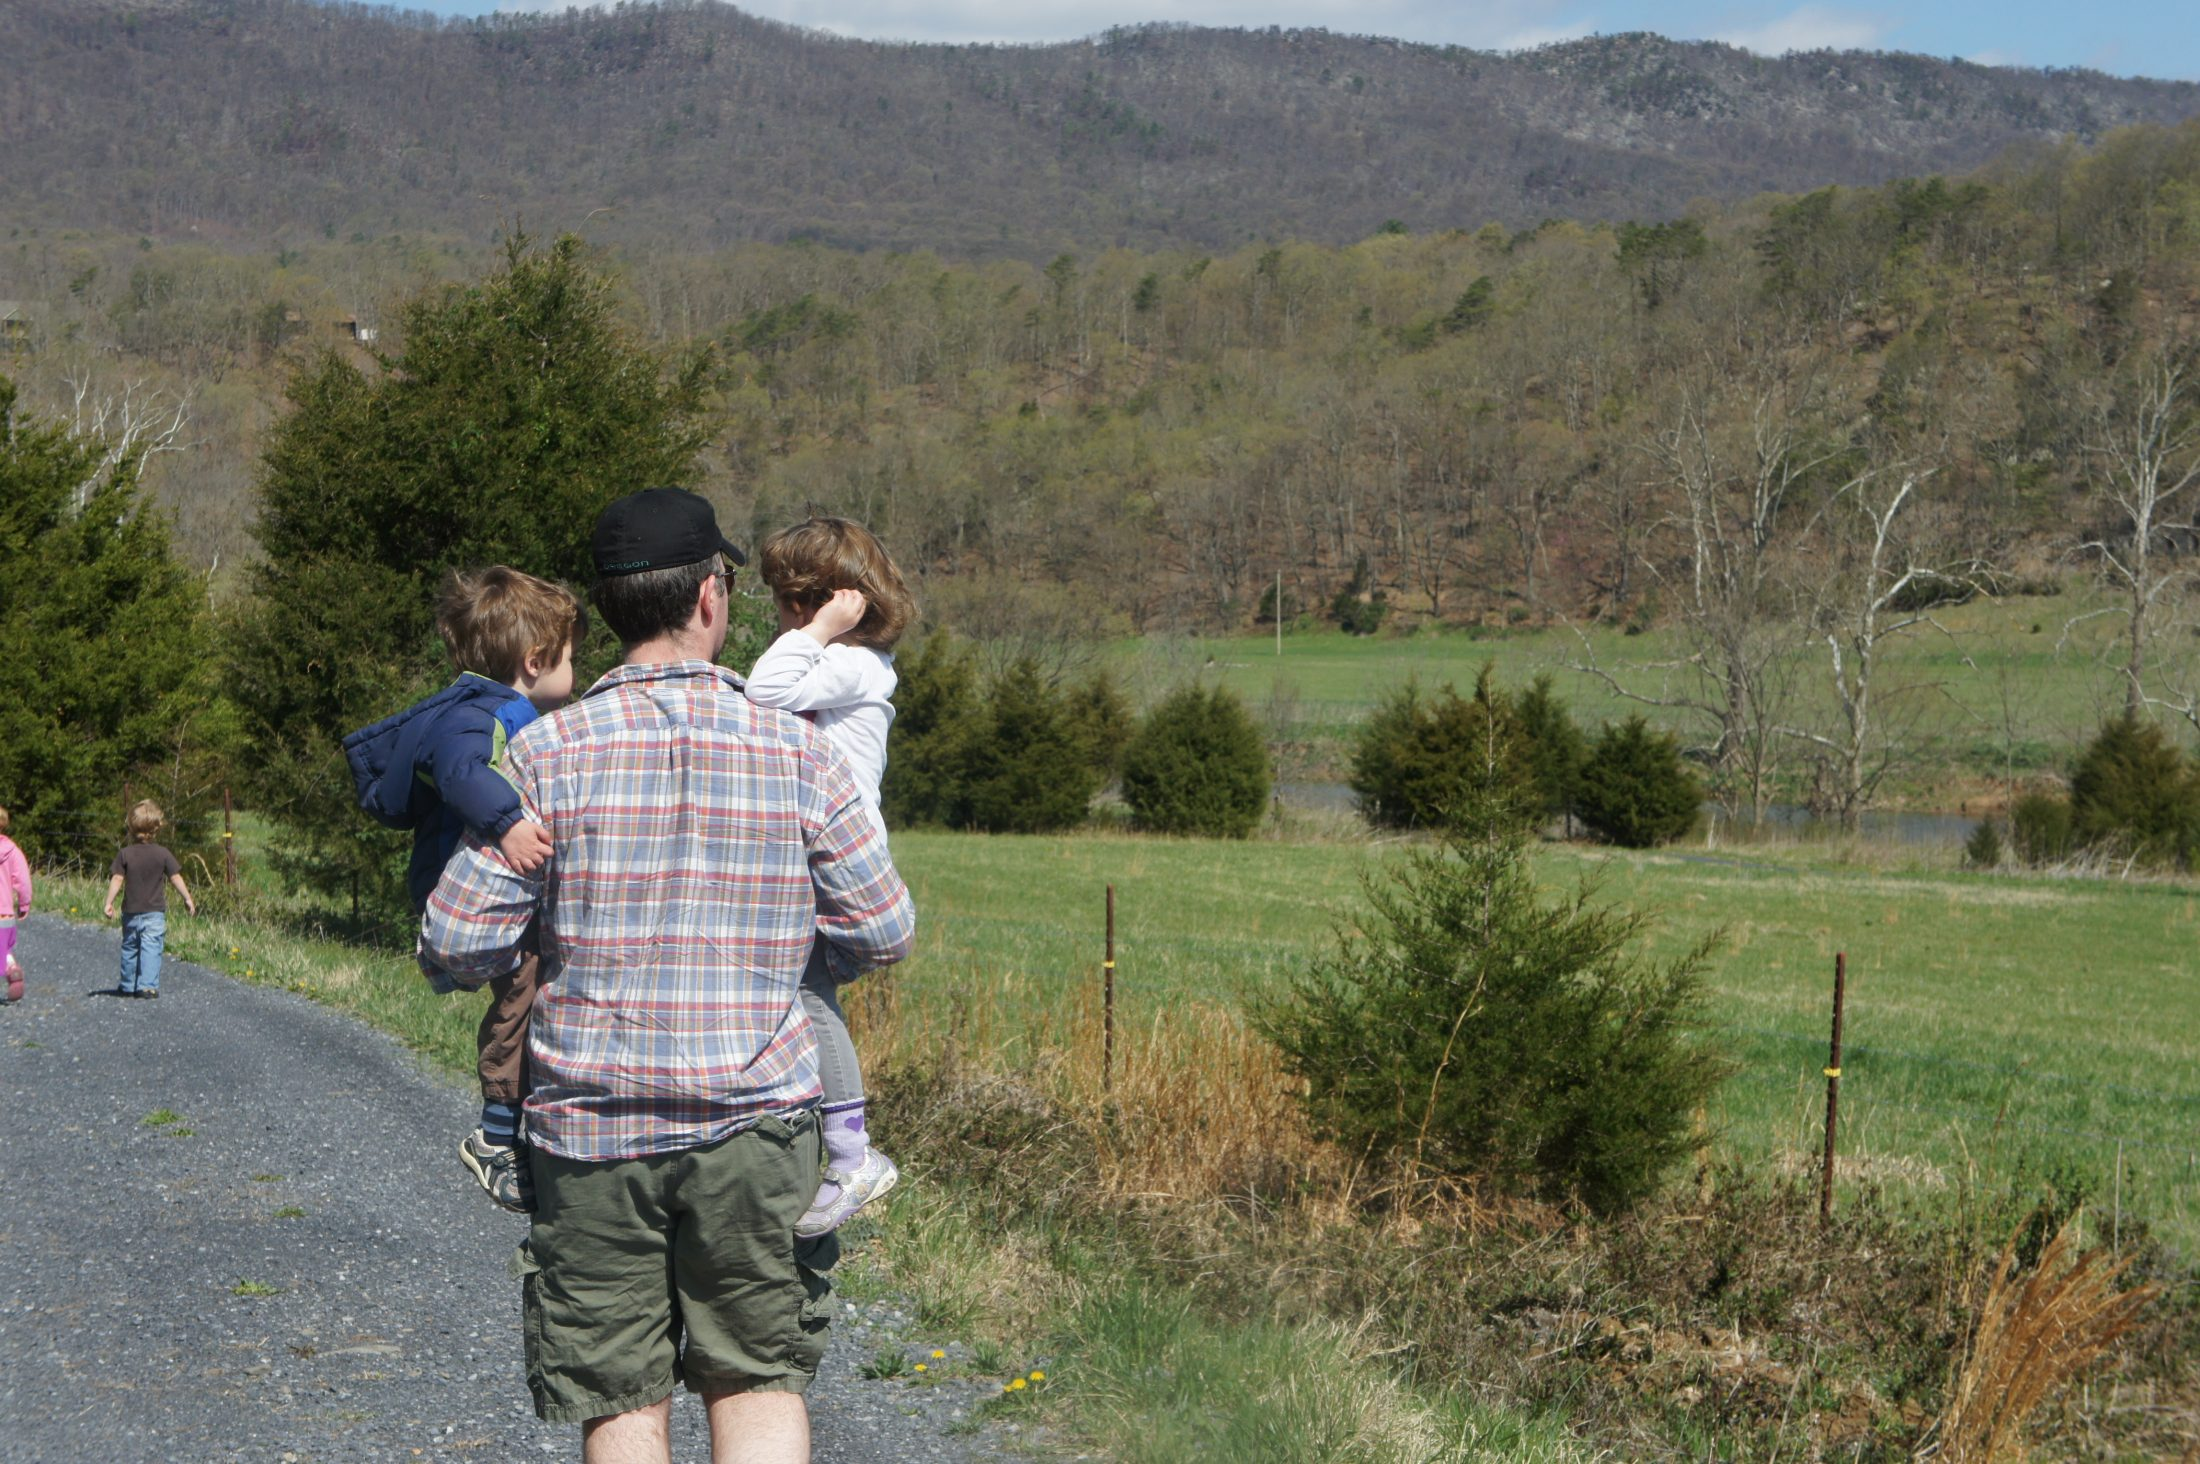 Shawn Brimley hiking with kids outside DC